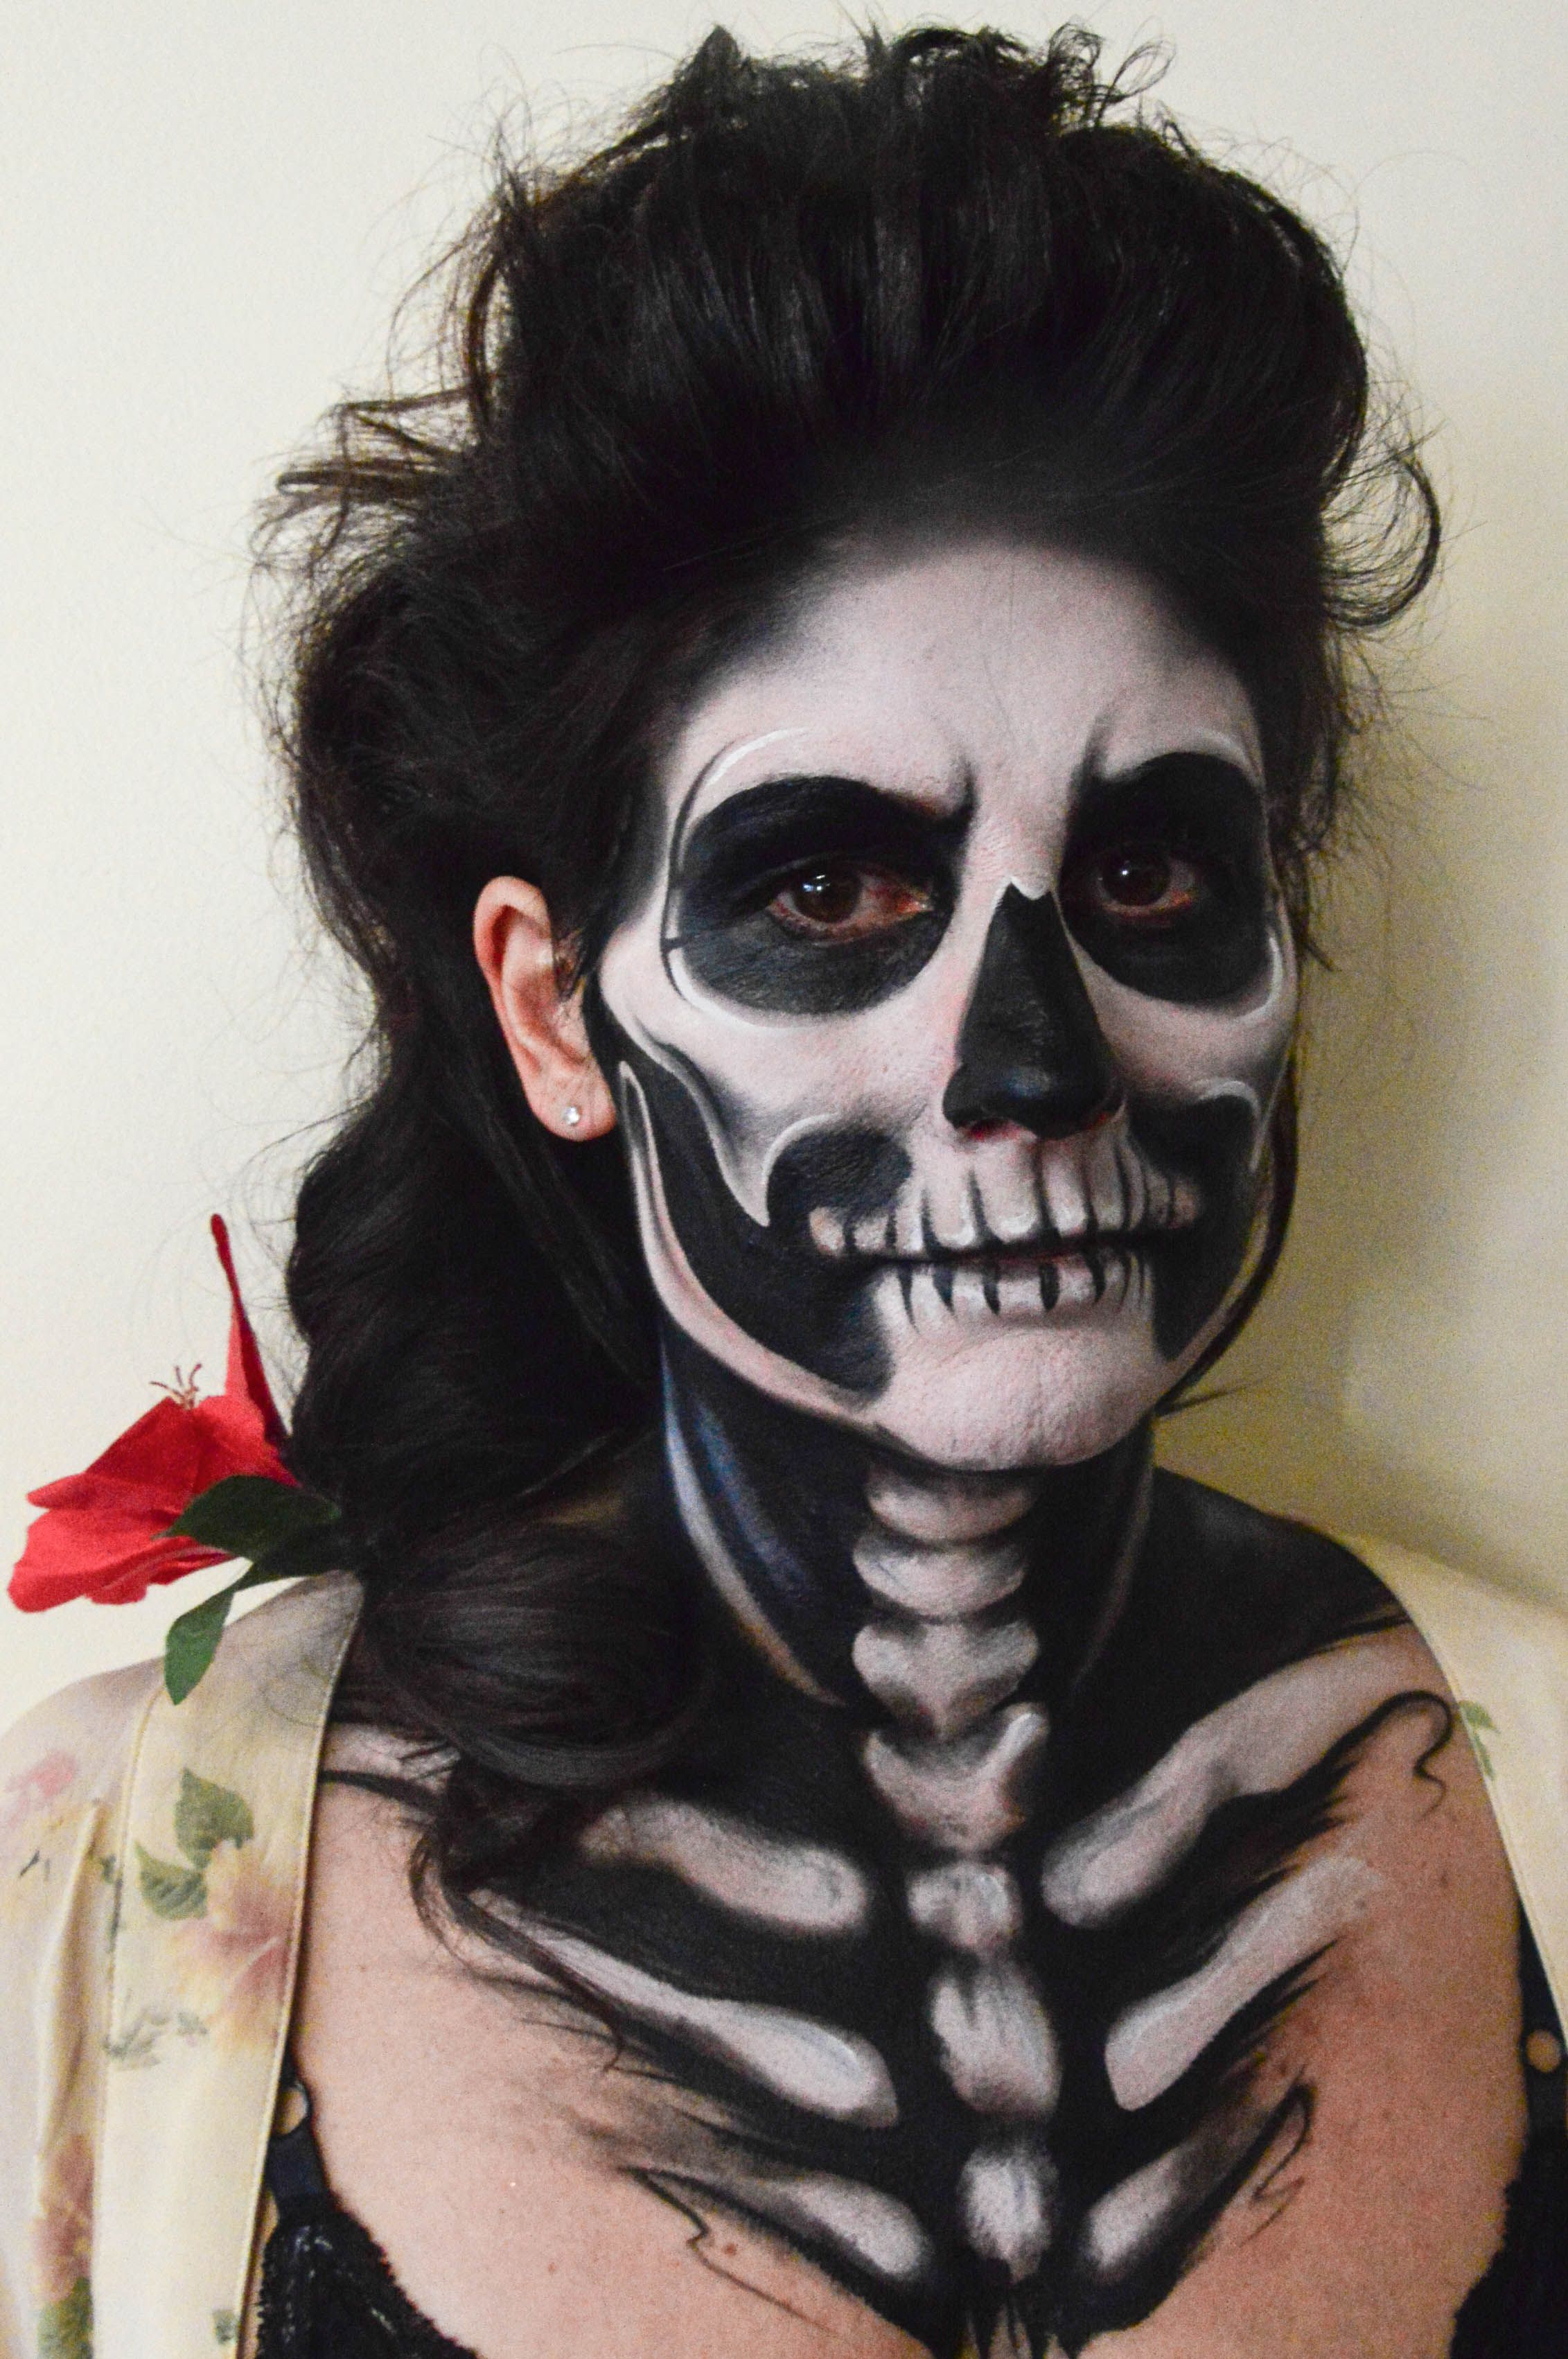 Makeup done by SFX MUAs, working at BODYFX NEW ZEALAND